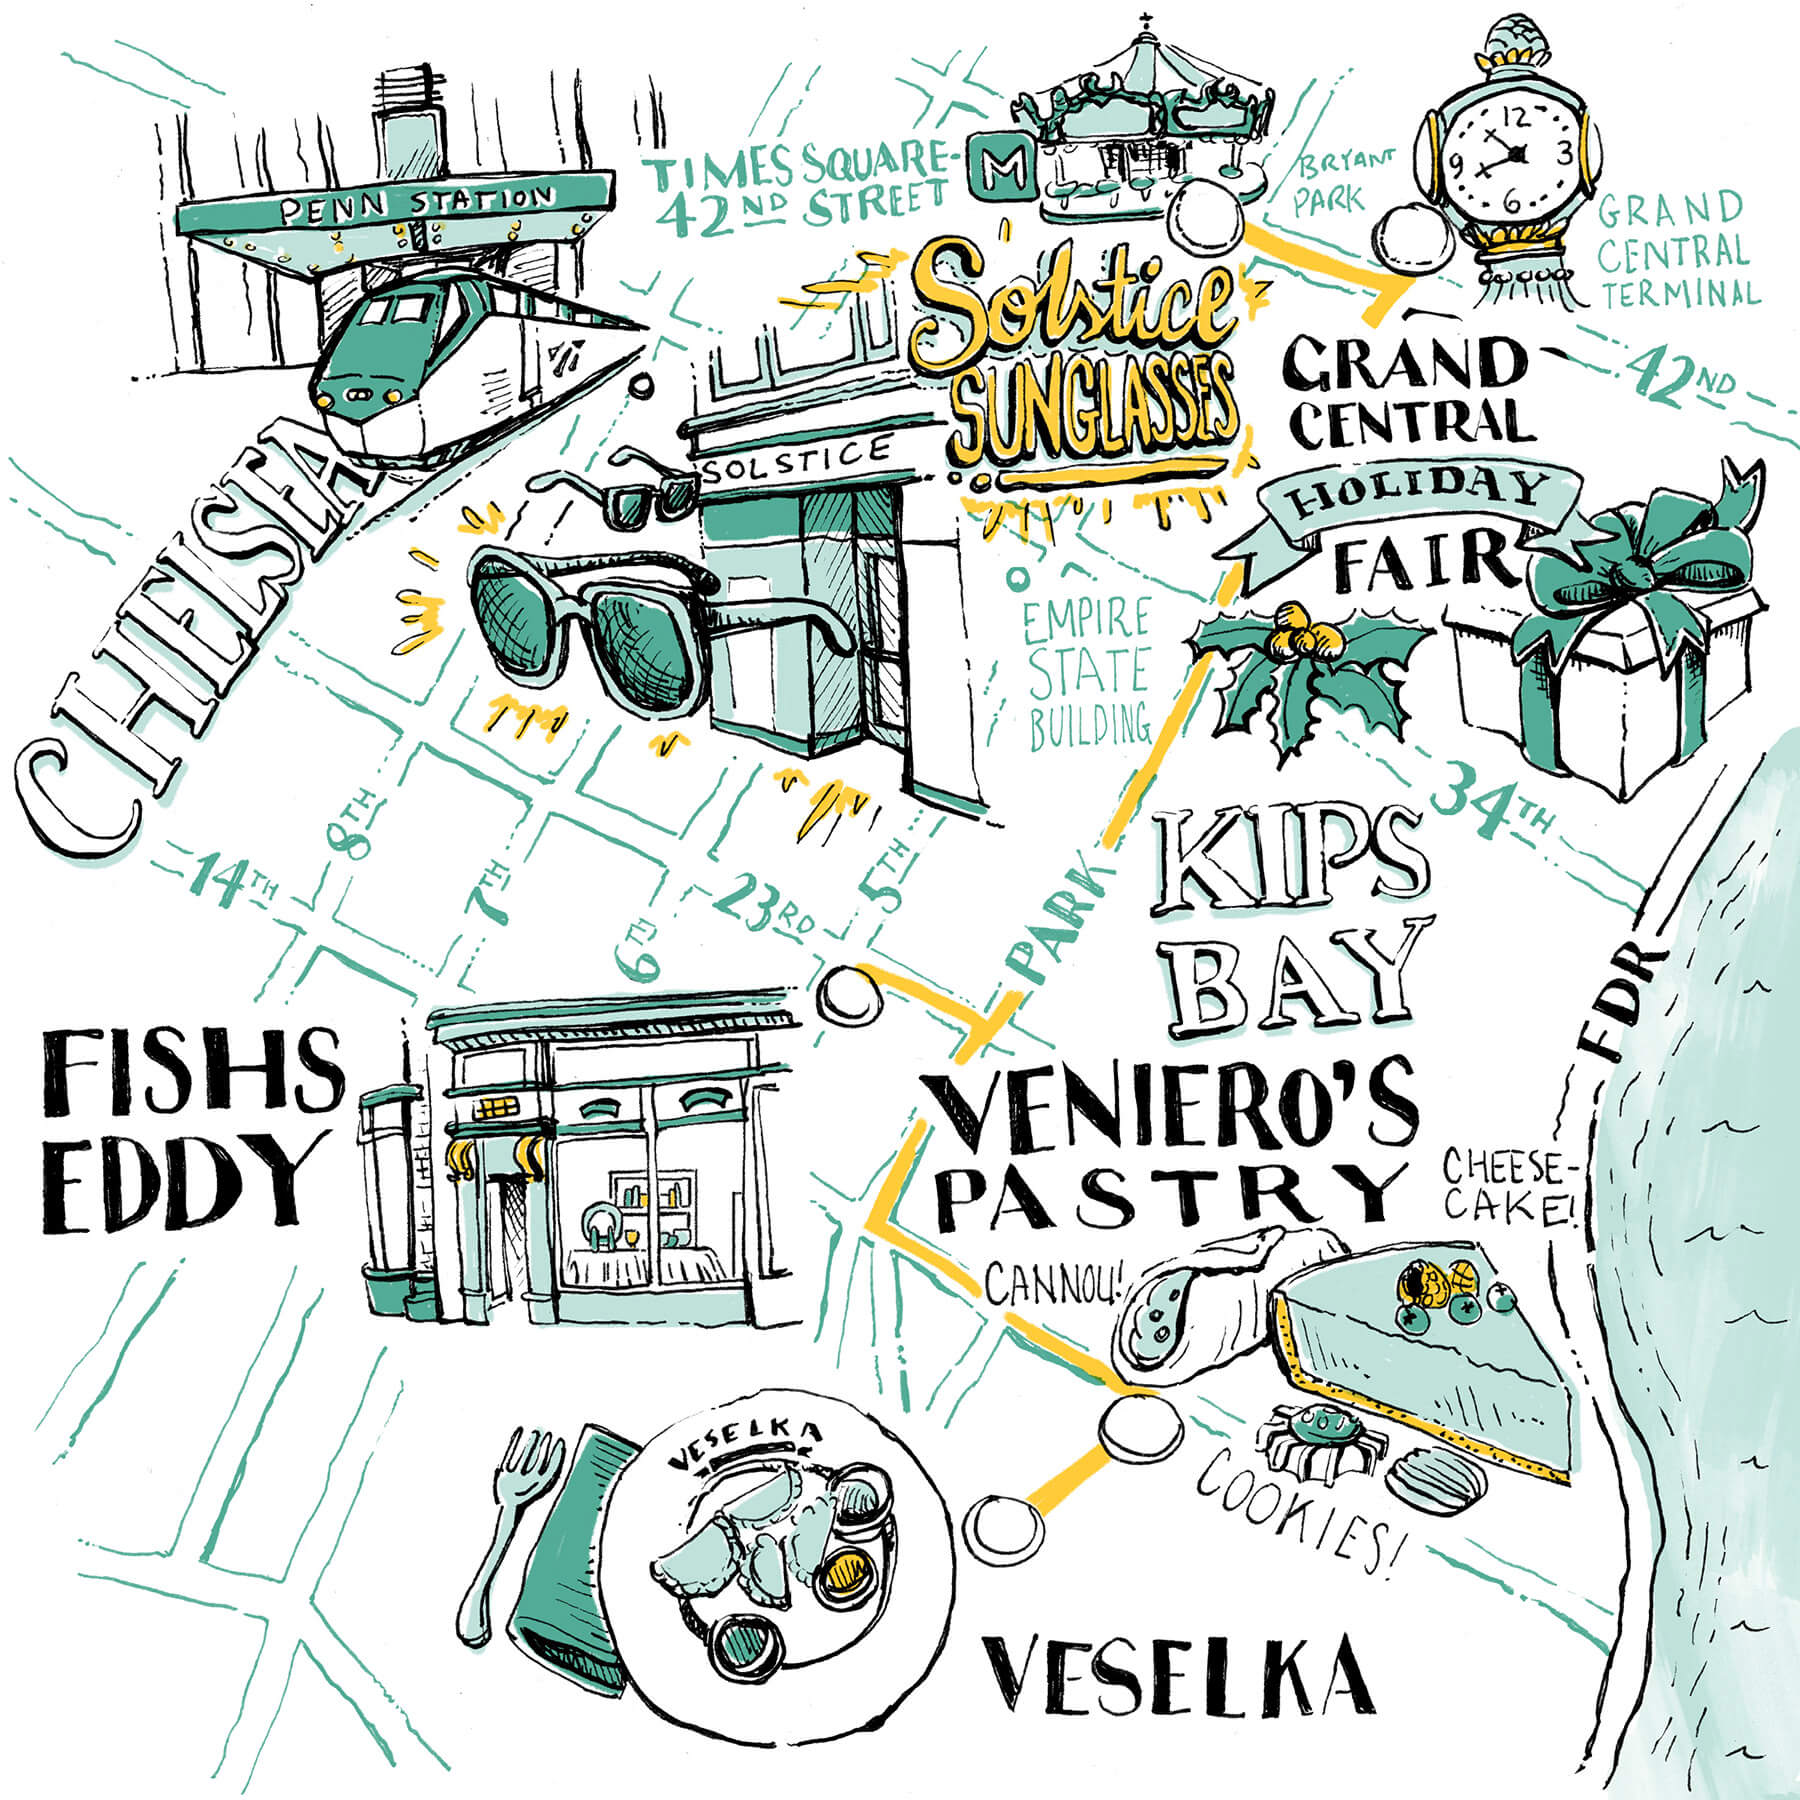 Katie O'Donnell's Map - Grand Central Holiday Fair, Solstice Sunglasses, Veniero's Pastry, Fishs Eddy, Veselka, and more.